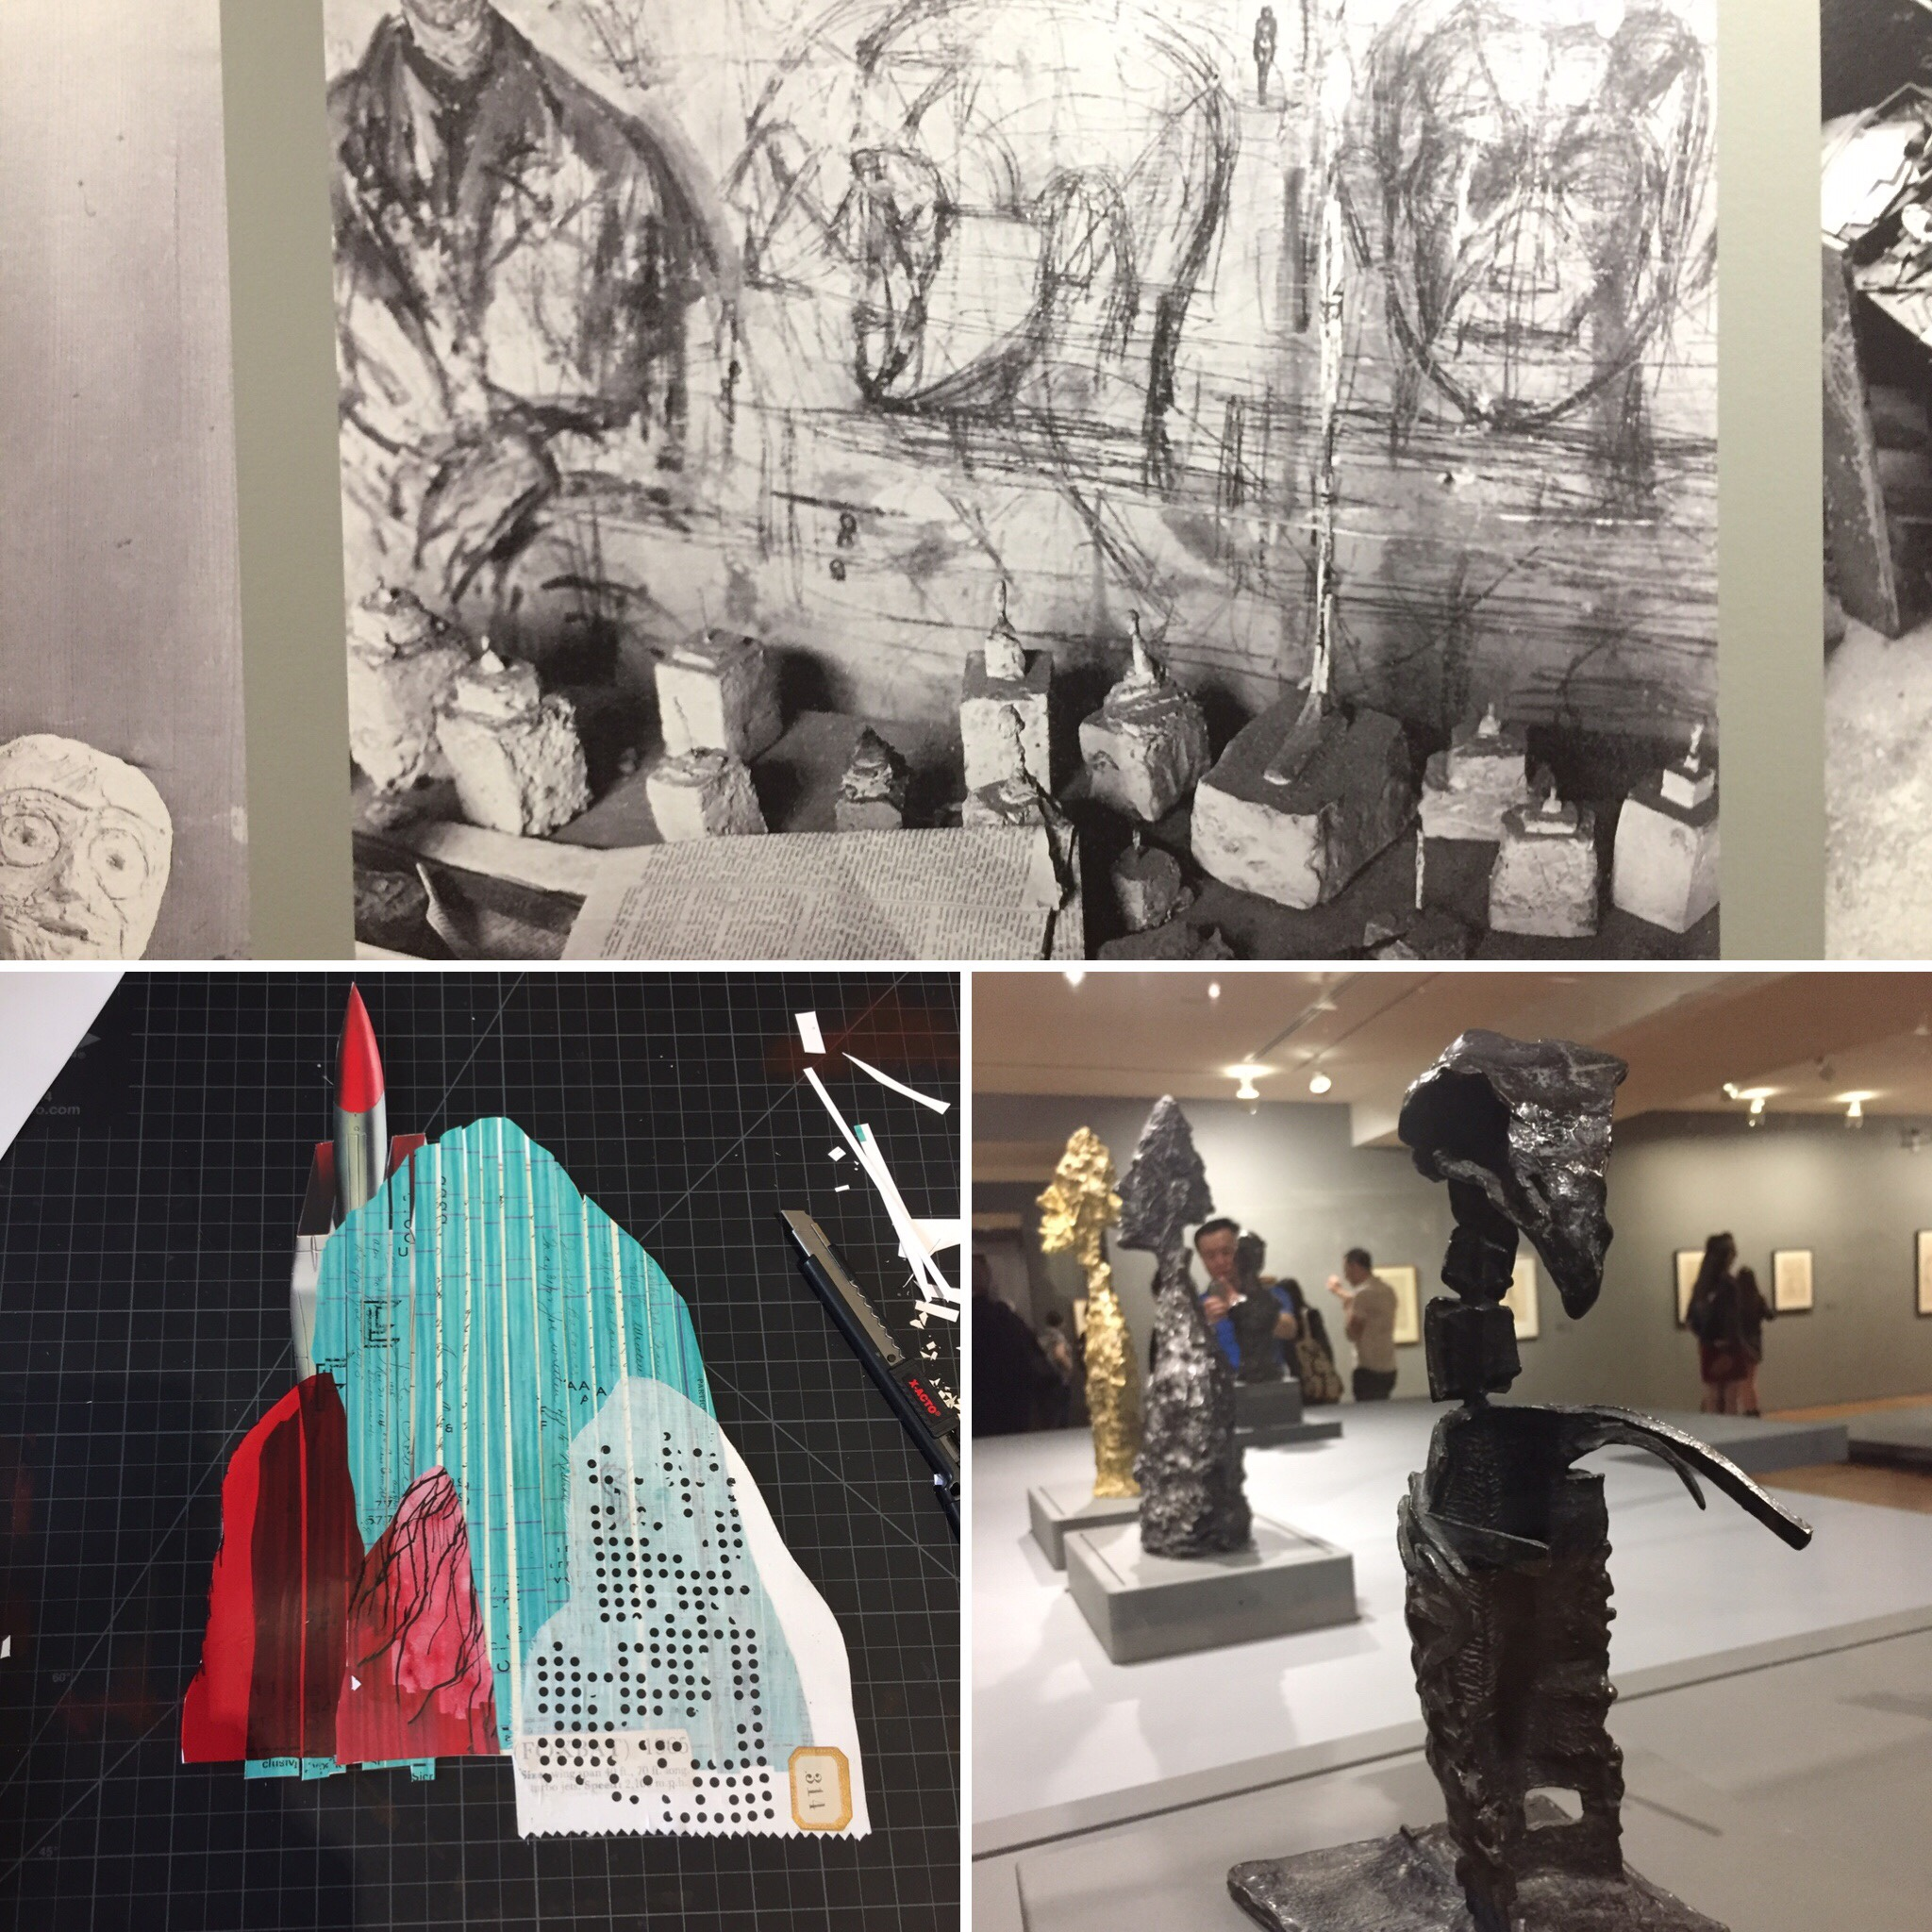 July 5/19 - Worked on/finished the thrust of this collage. Went to members opening of Alberto Giacometti, the images of the studio though!